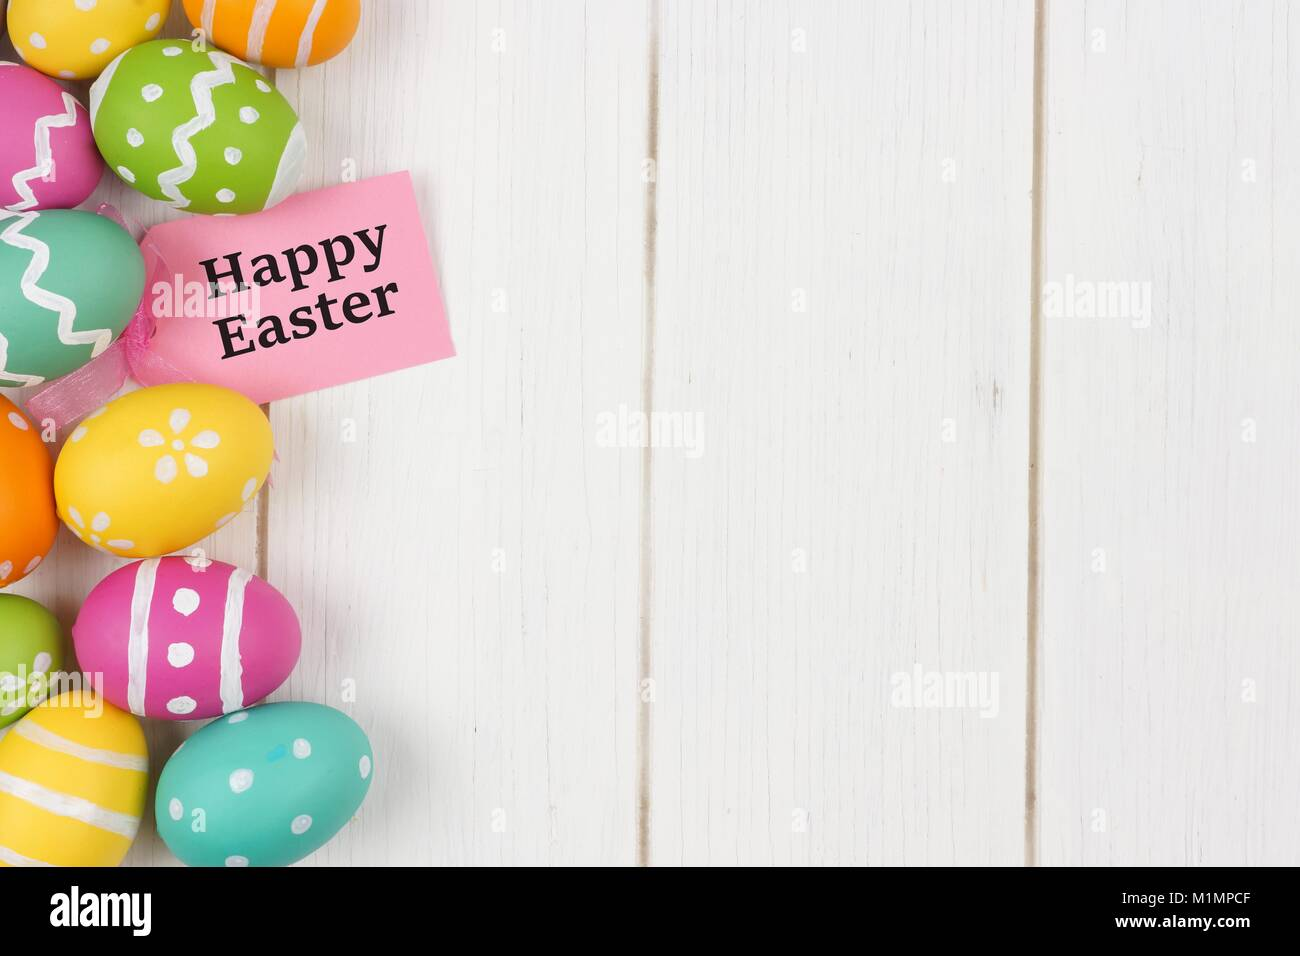 Happy easter gift tag with colorful easter egg side border against happy easter gift tag with colorful easter egg side border against a white wood background negle Image collections